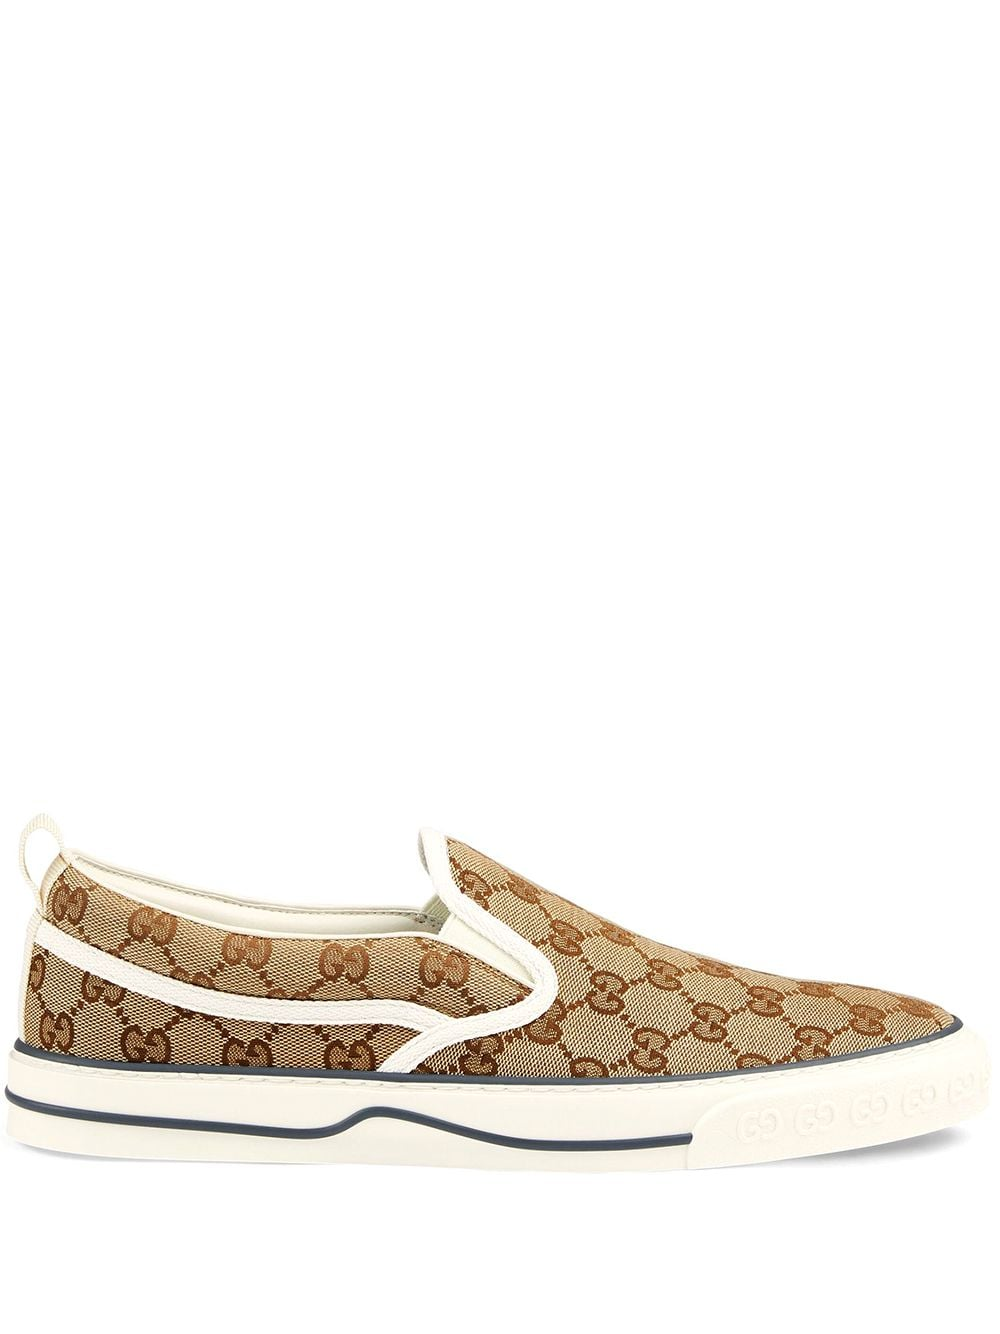 Gucci Slip-On-Sneakers aus GG Supreme - Nude von Gucci